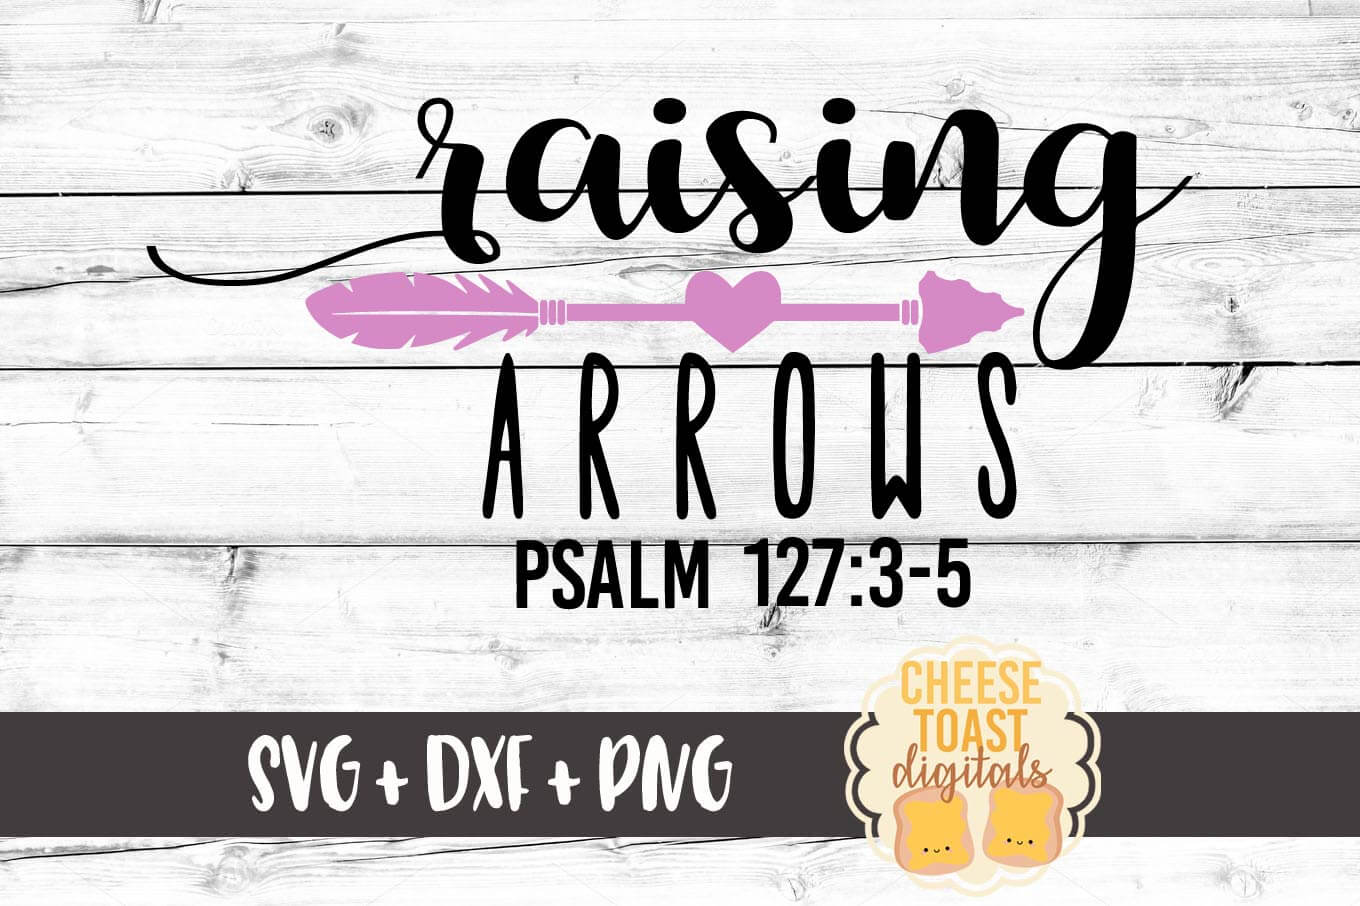 Raising Arrows Psalm 127:3-5